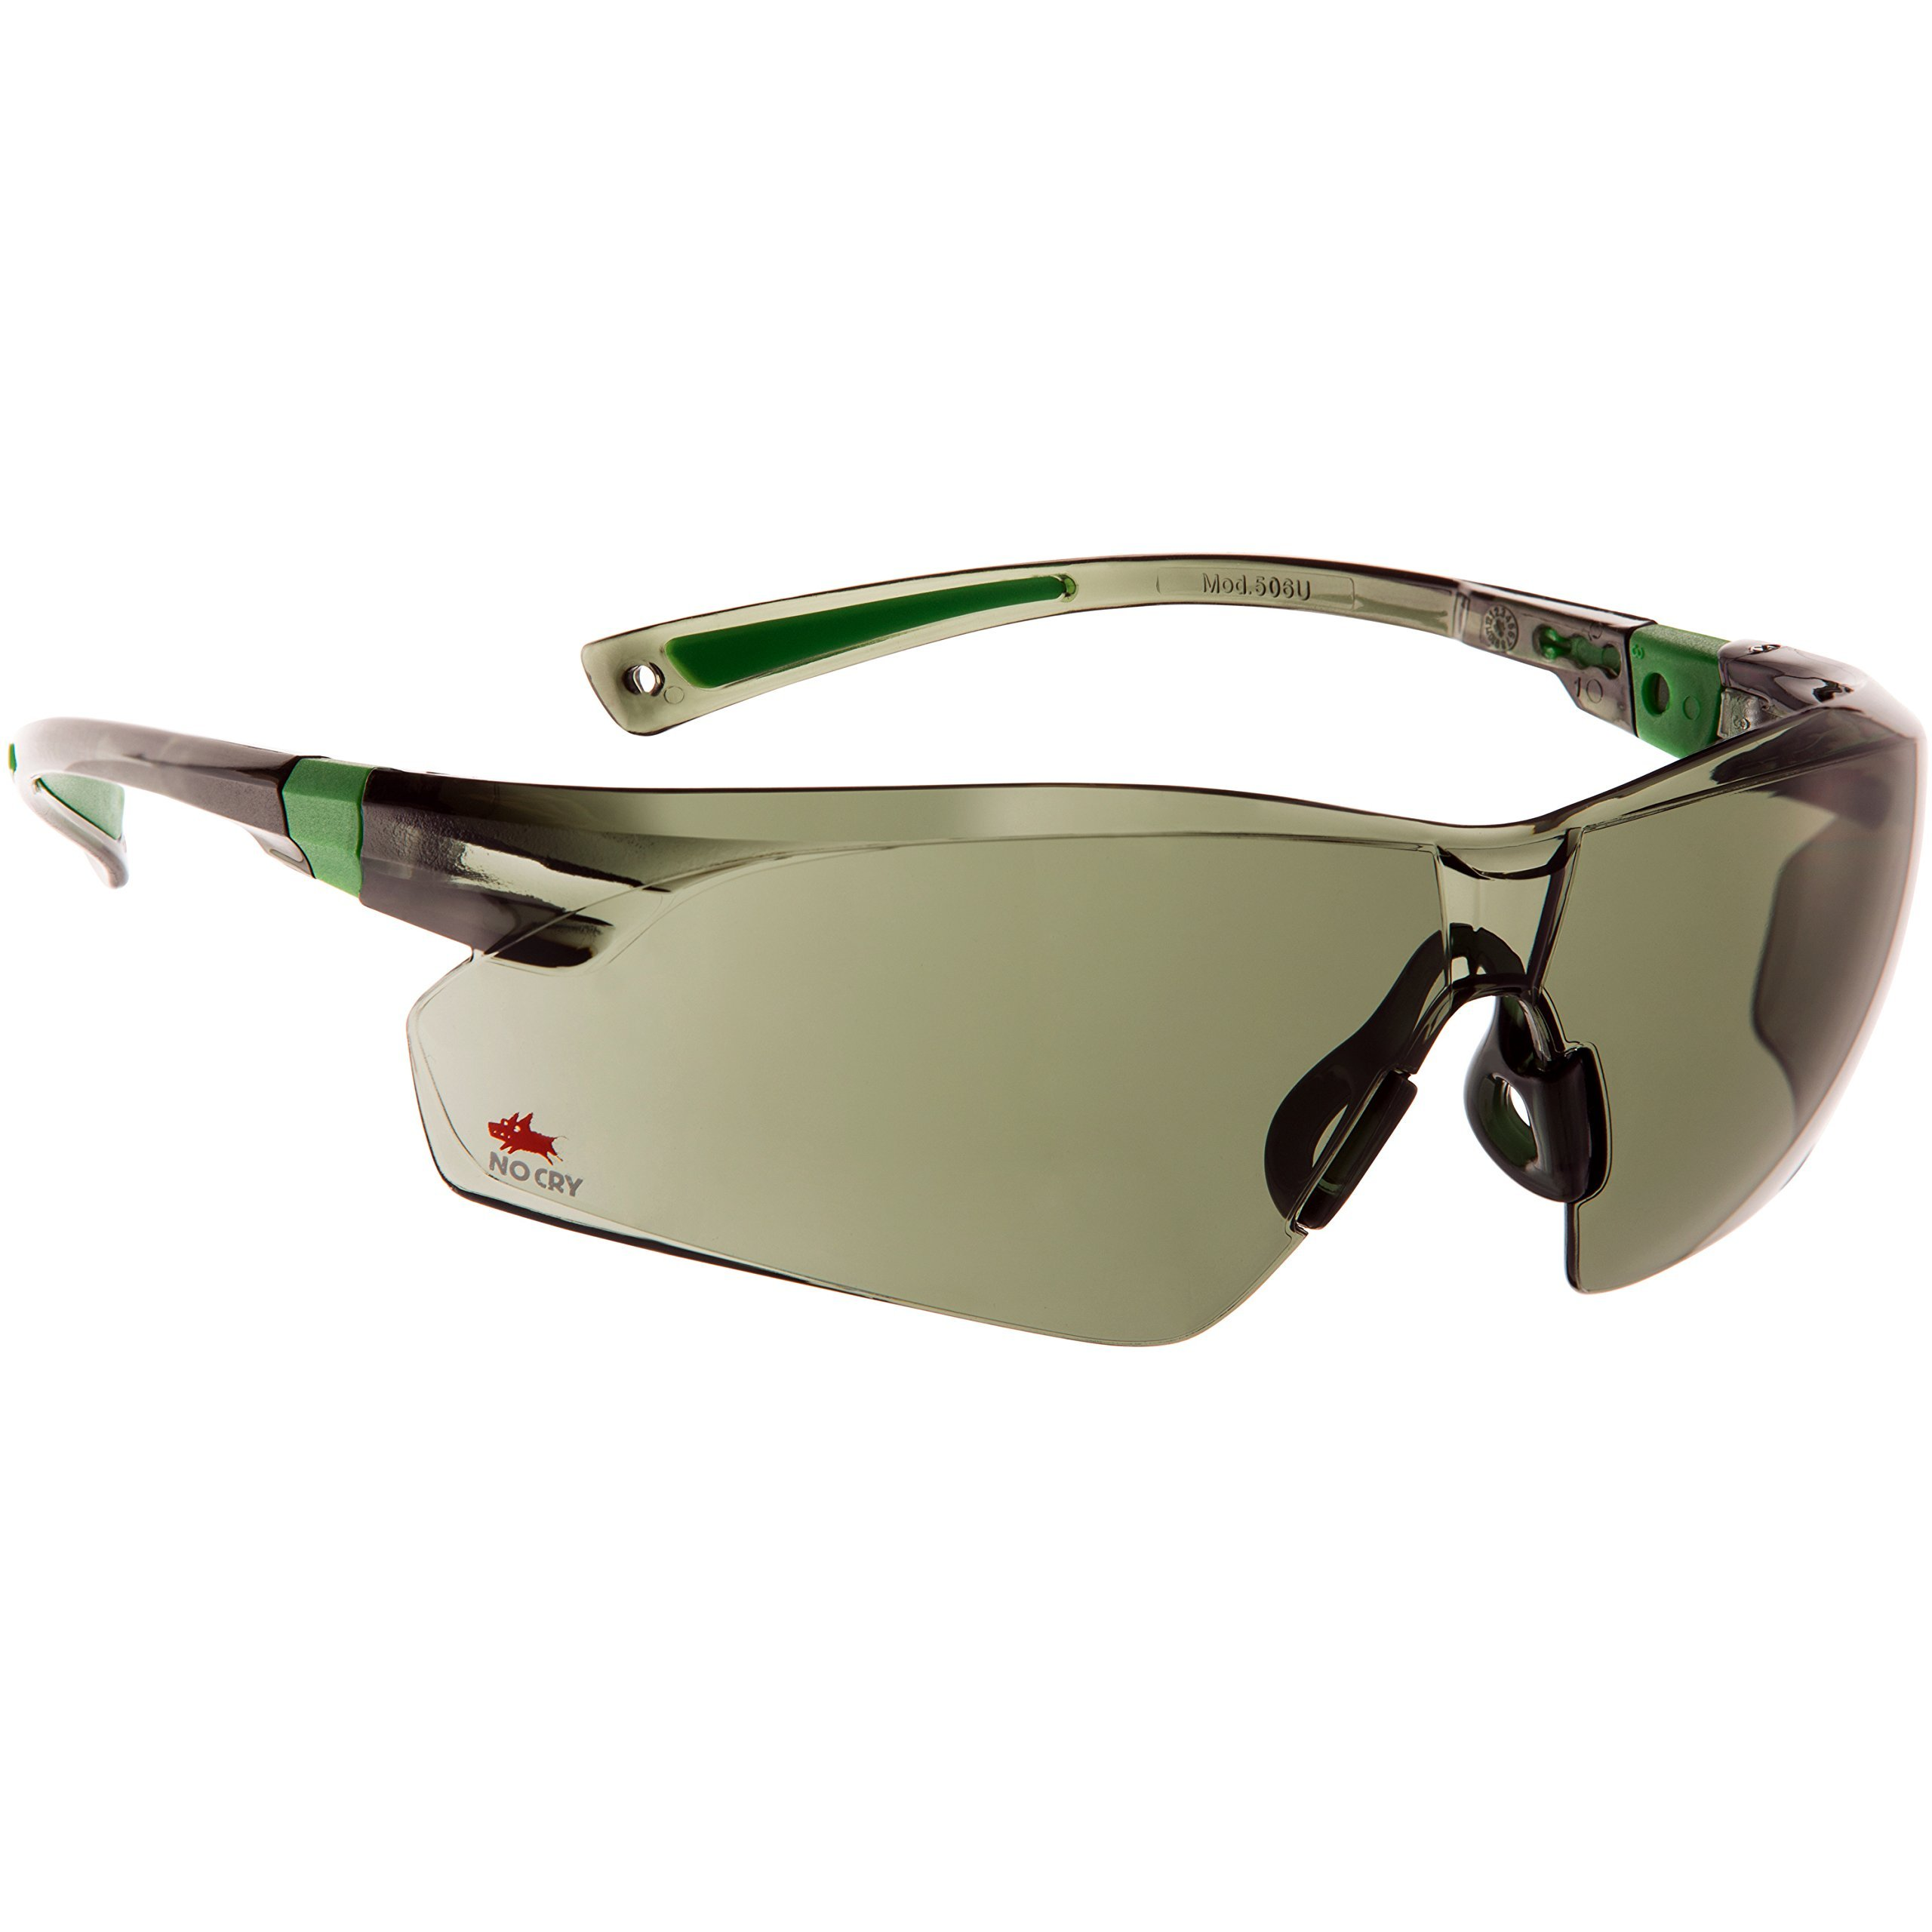 NoCry Safety Sunglasses with Green Tinted Scratch Resistant Wrap-Around Lenses and No-Slip Grips, UV 400 Protection. Adjustable, Black & Green Frames by NoCry